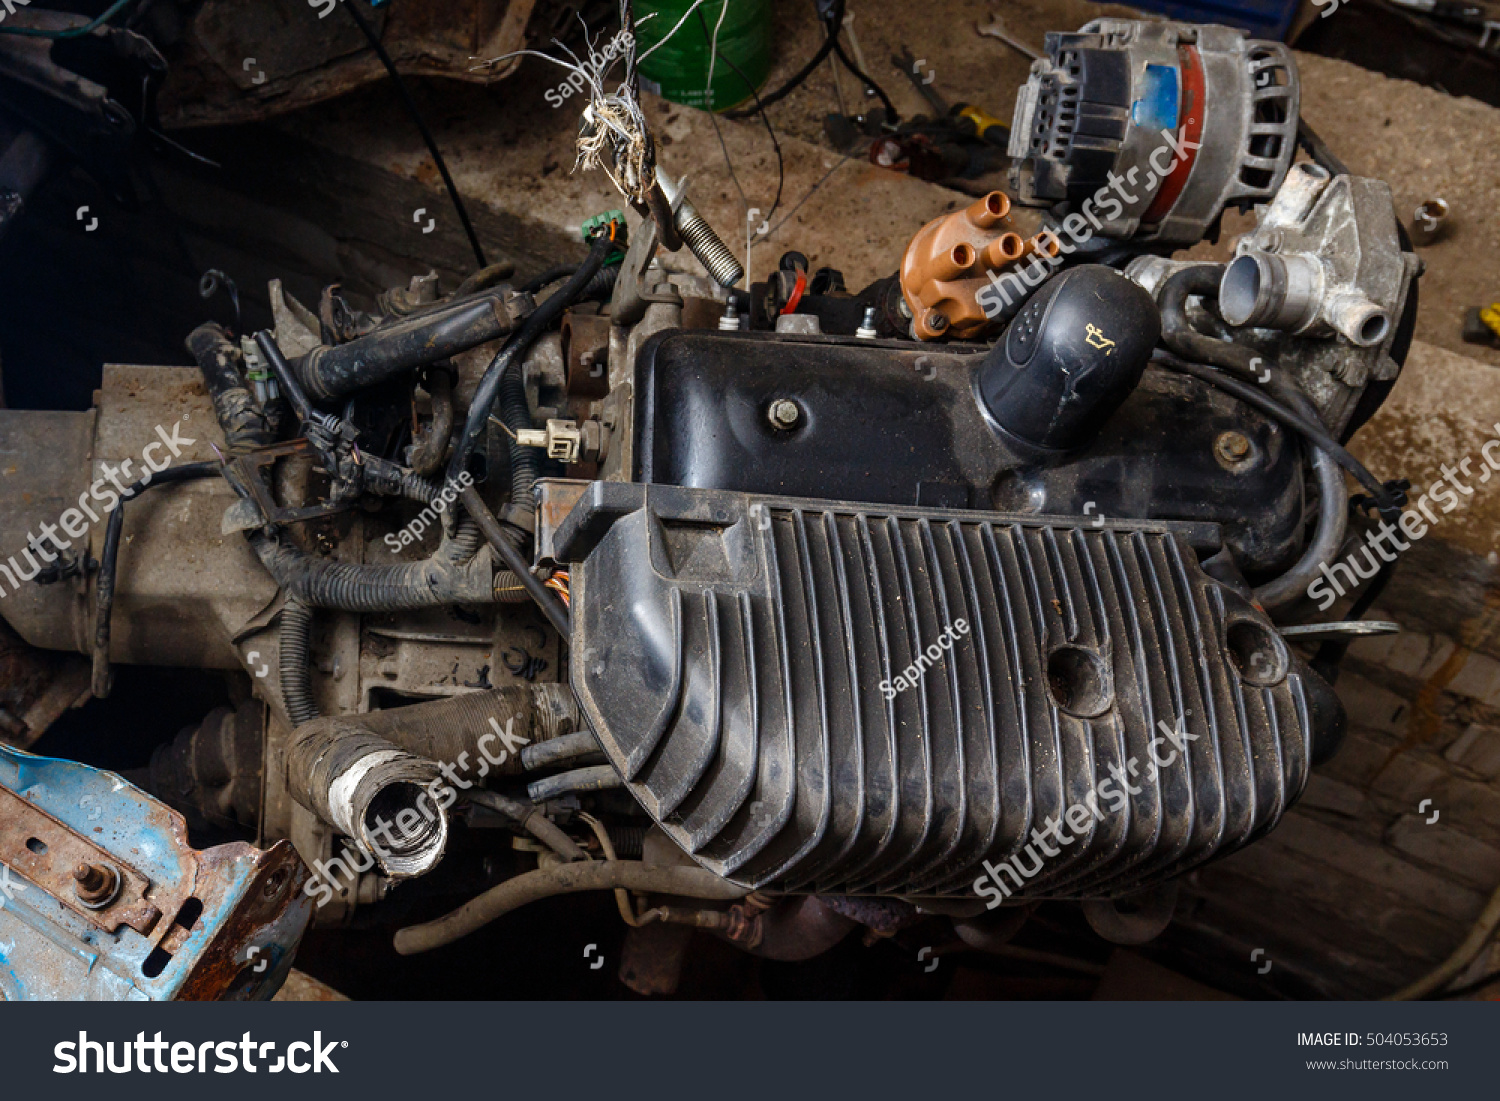 Breaking Down Old Car Engine Stock Photo 504053653 - Shutterstock